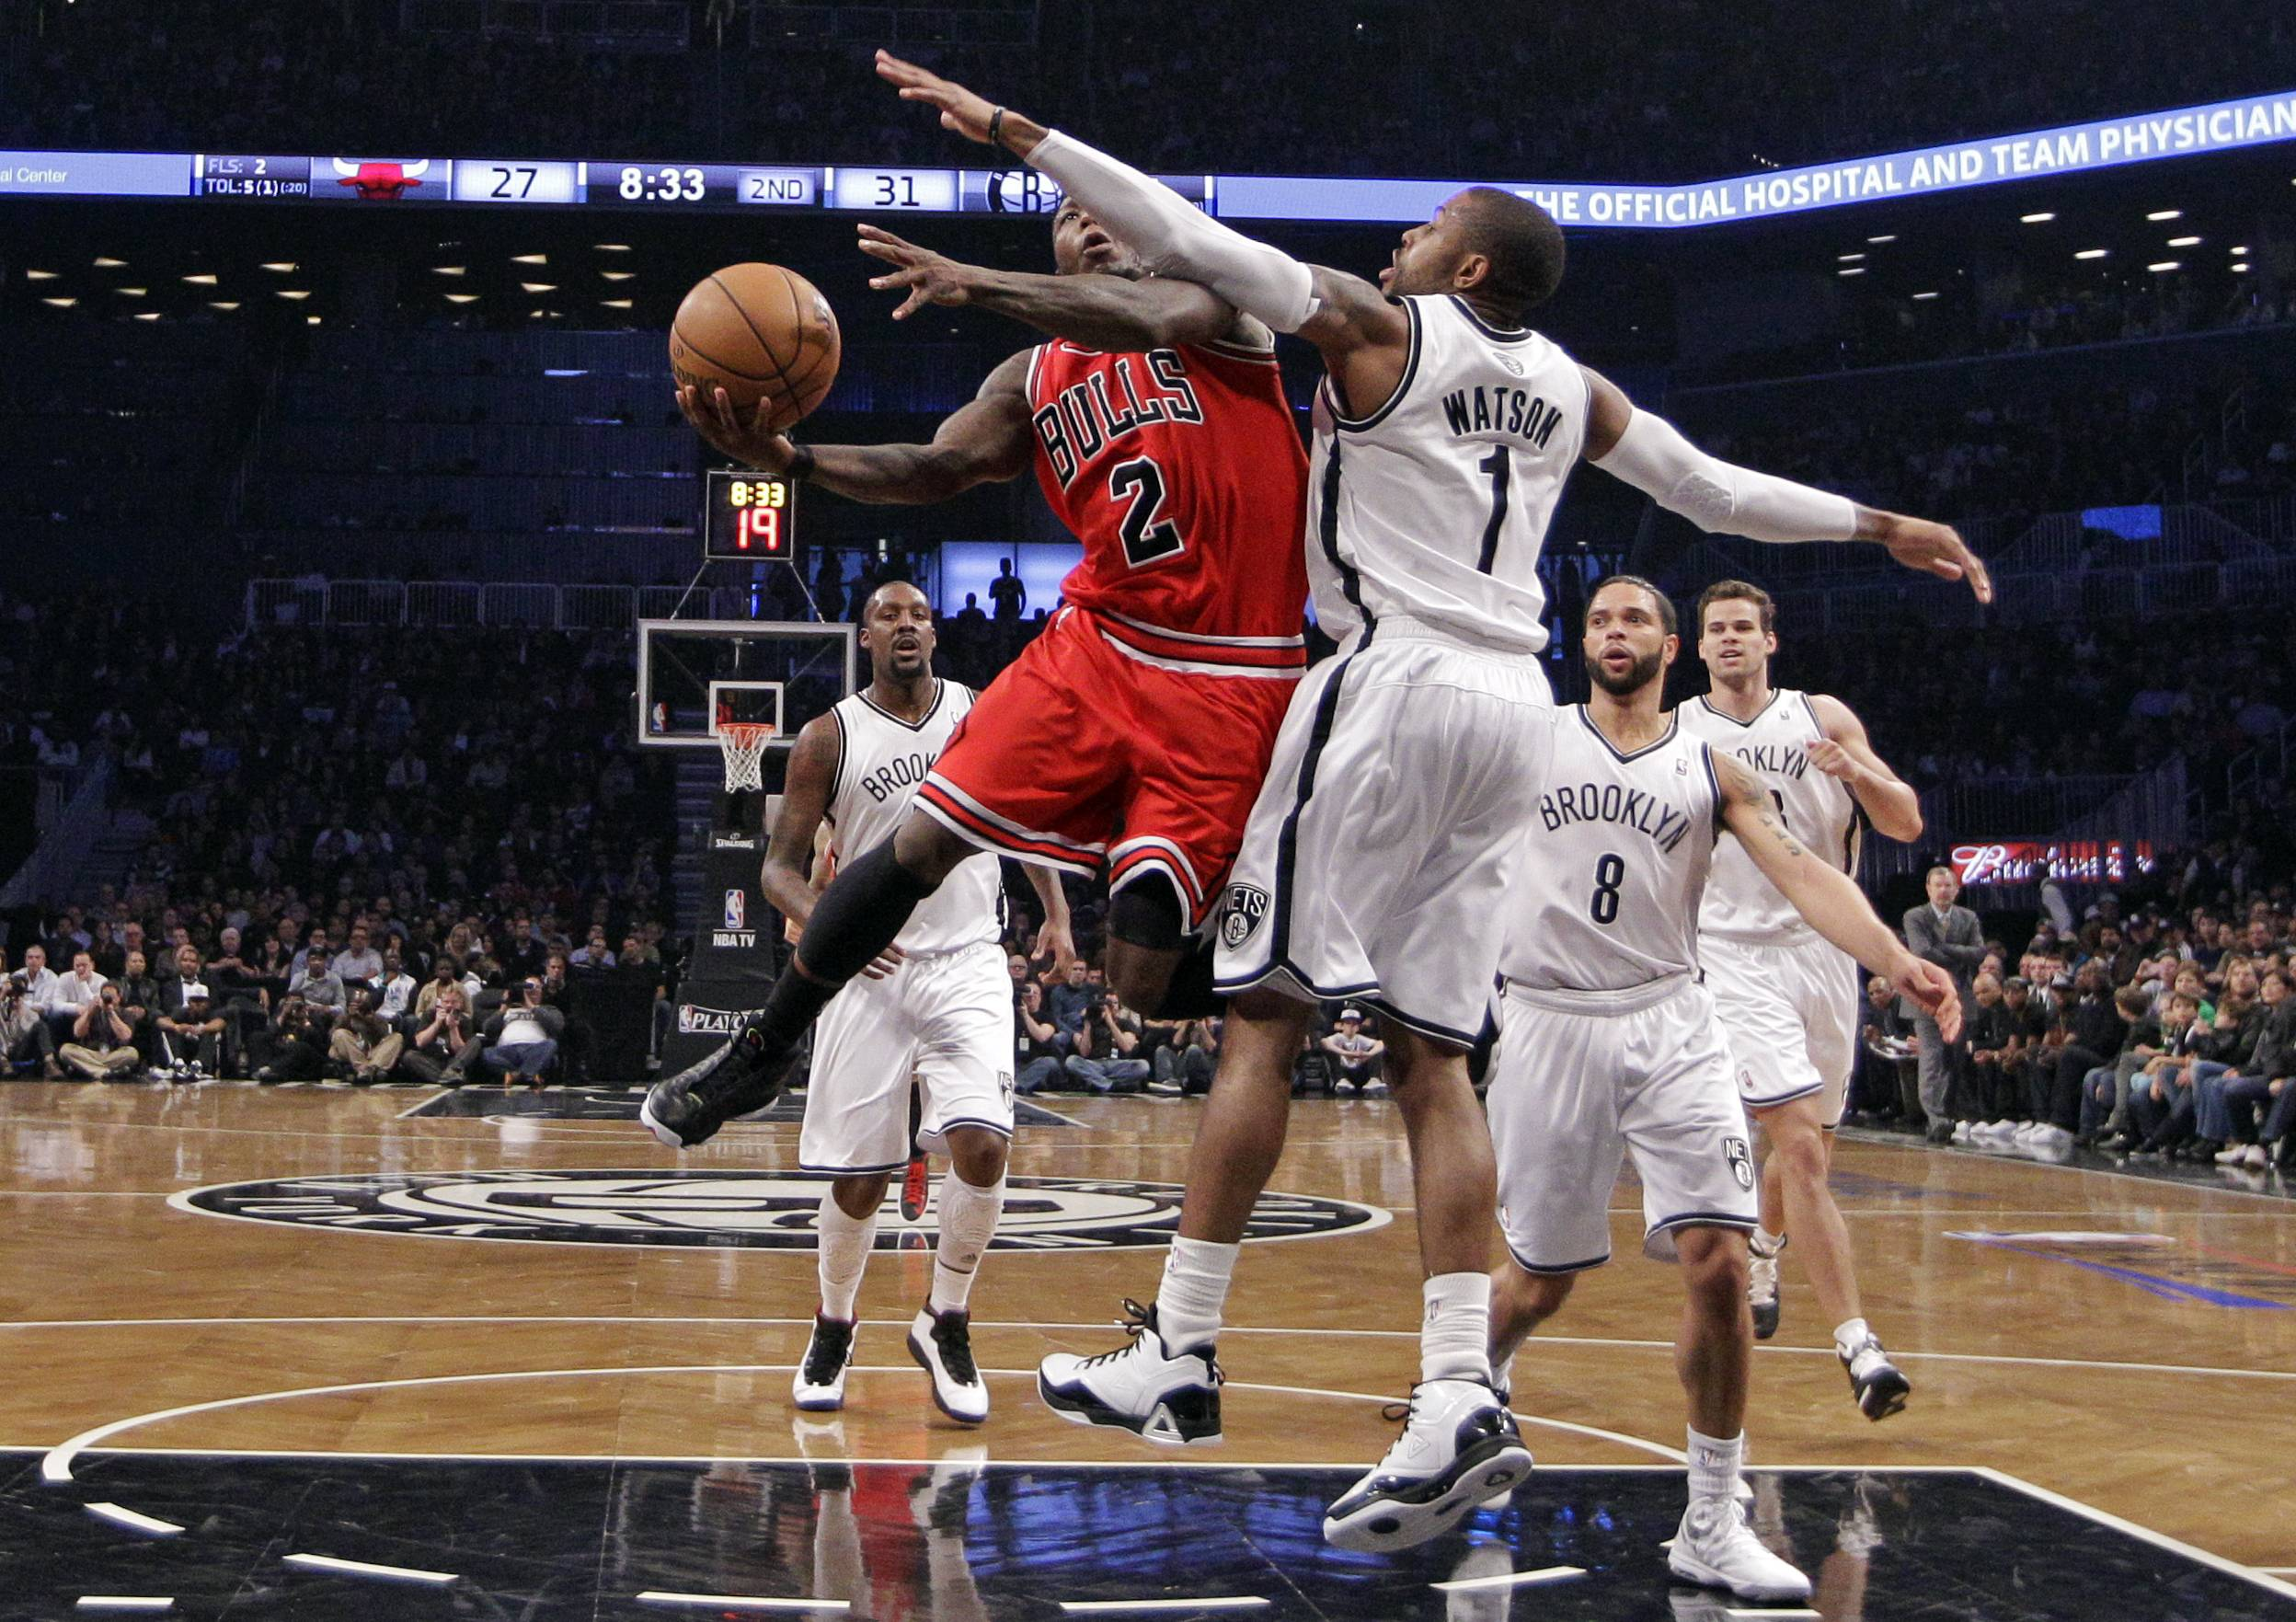 Brooklyn Nets guard C.J. Watson (1) defends as Chicago Bulls guard Nate Robinson (2) goes up for a layup in the second half of Game 5 of their first-round NBA basketball playoff series, Monday, April 29, 2013, in New York. The Nets won 110-91.